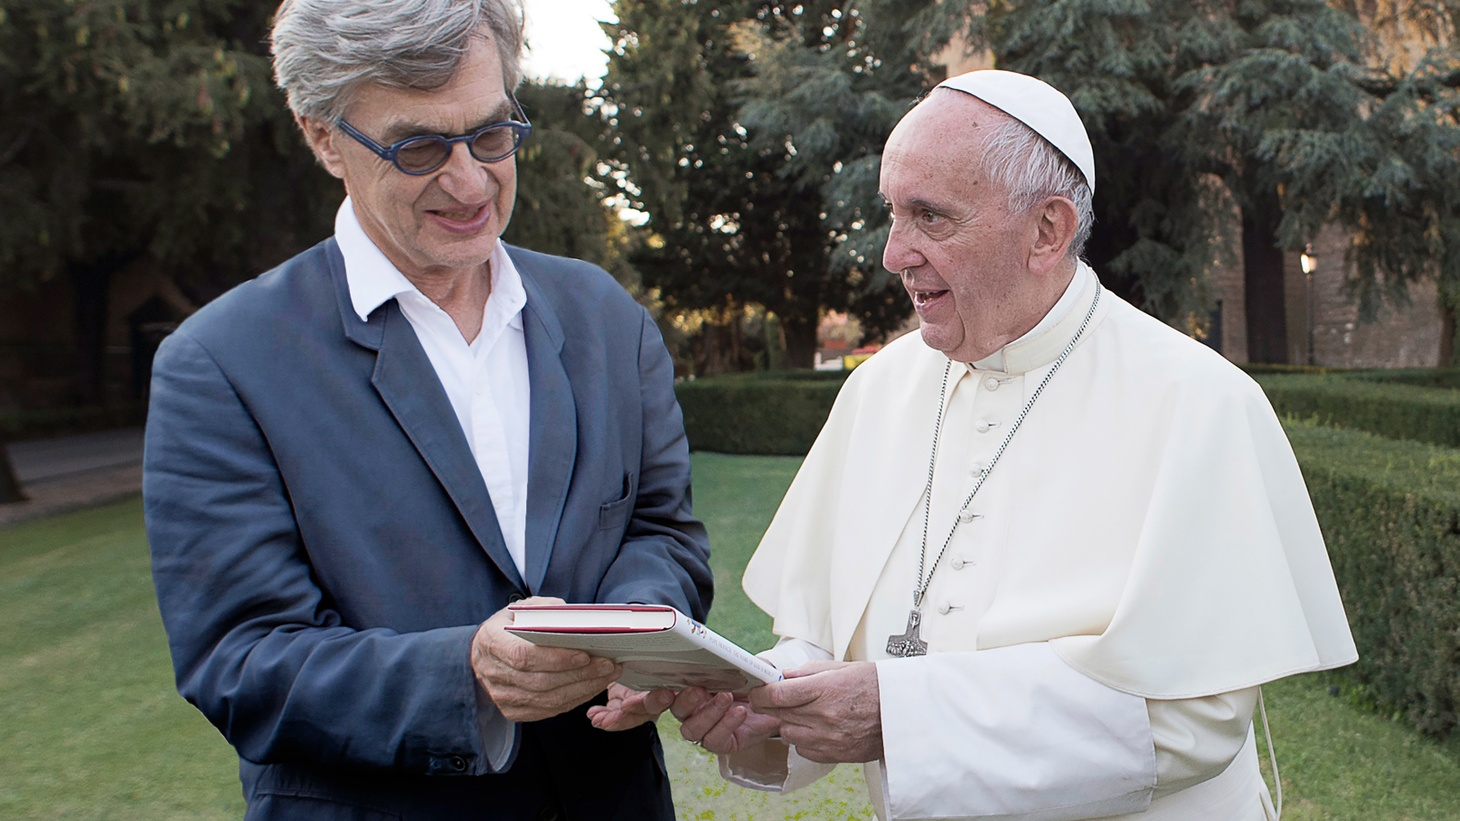 The Oscar nominated director discusses his documentary about the current pope.